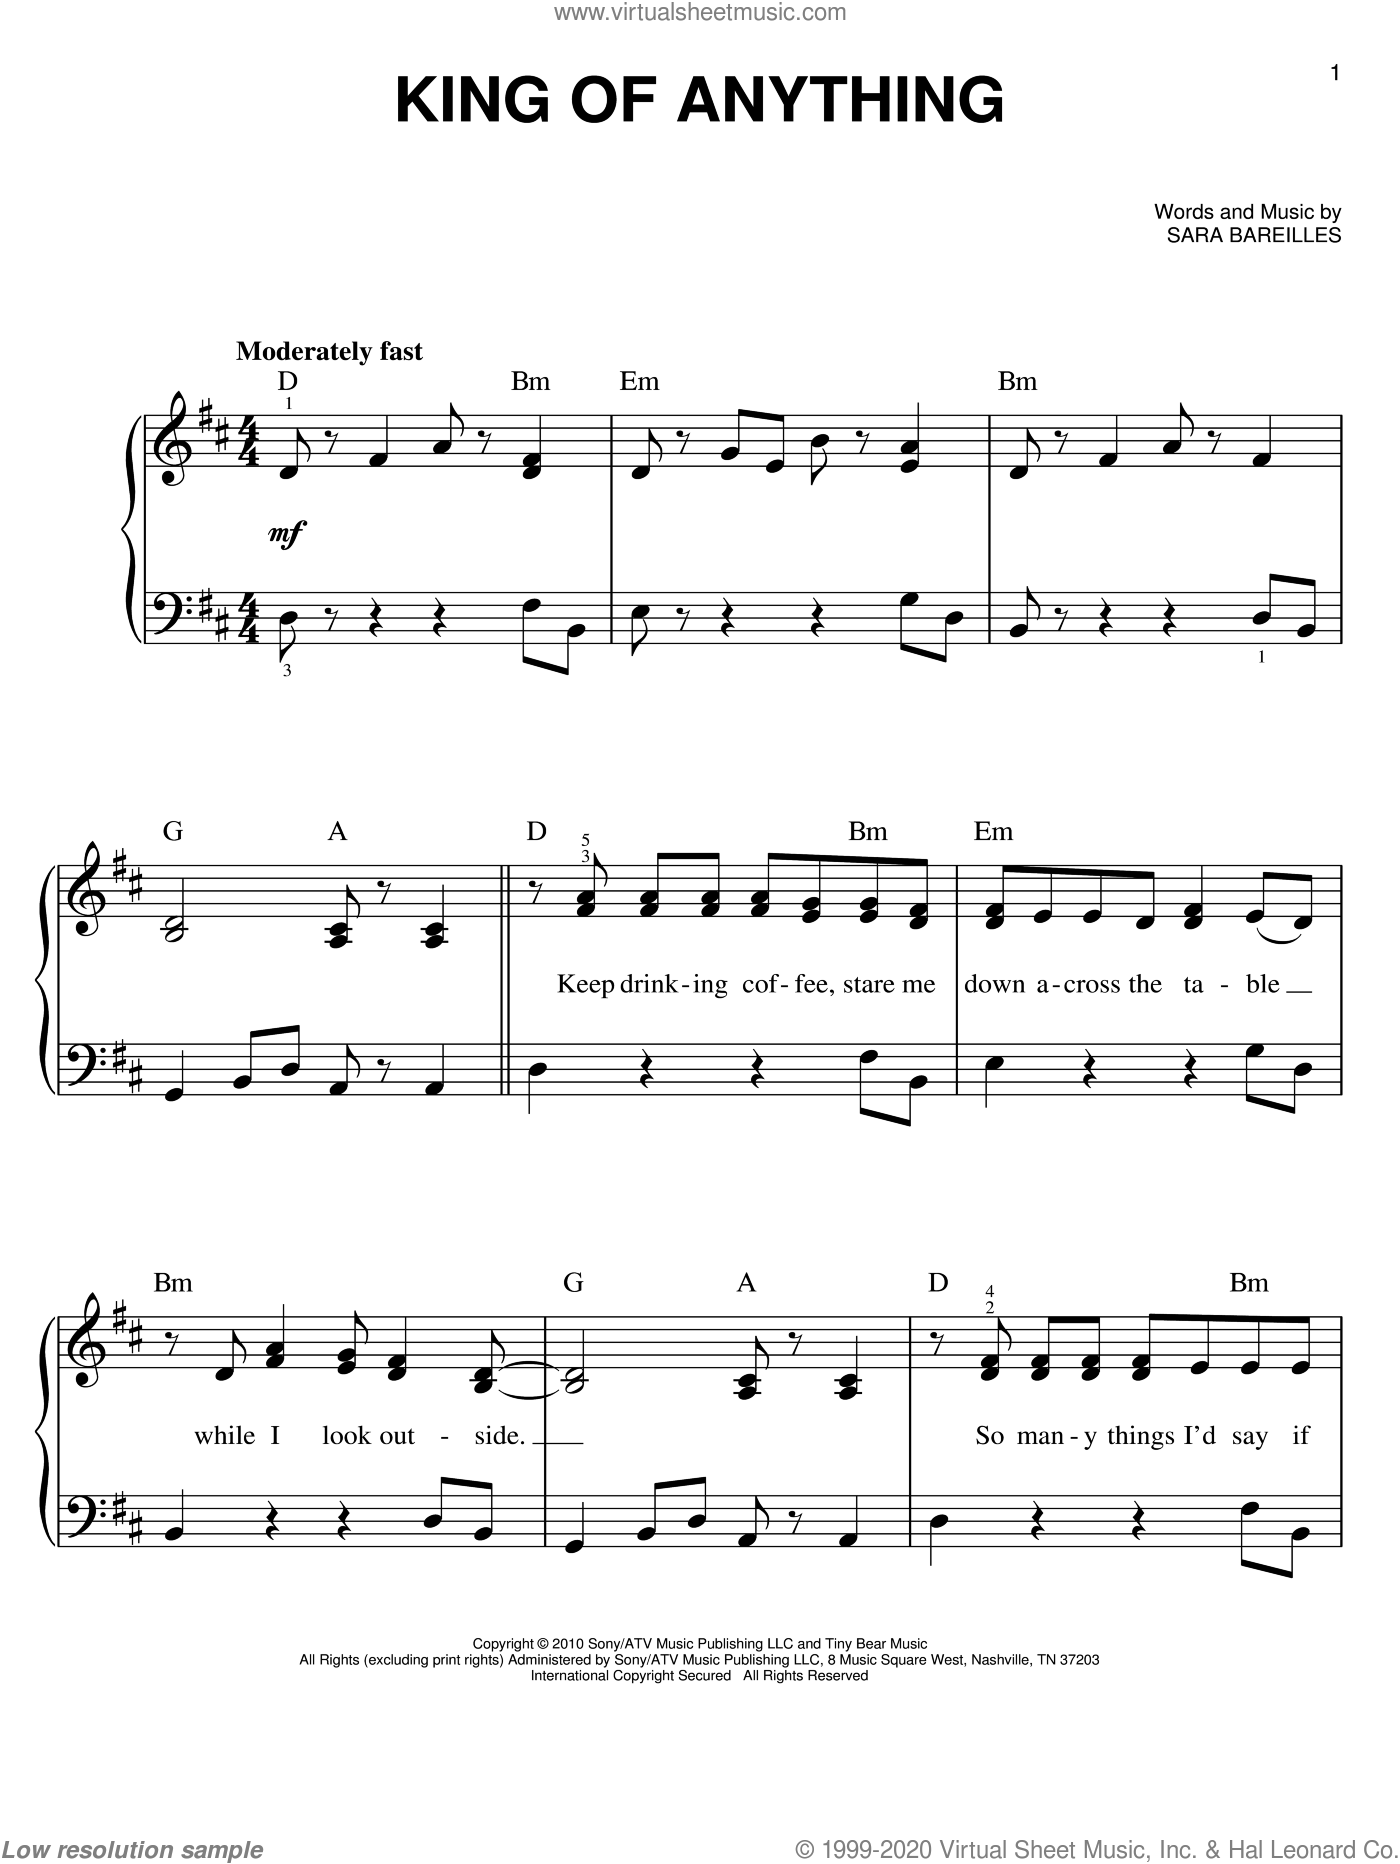 King Of Anything sheet music for piano solo by Sara Bareilles, easy skill level